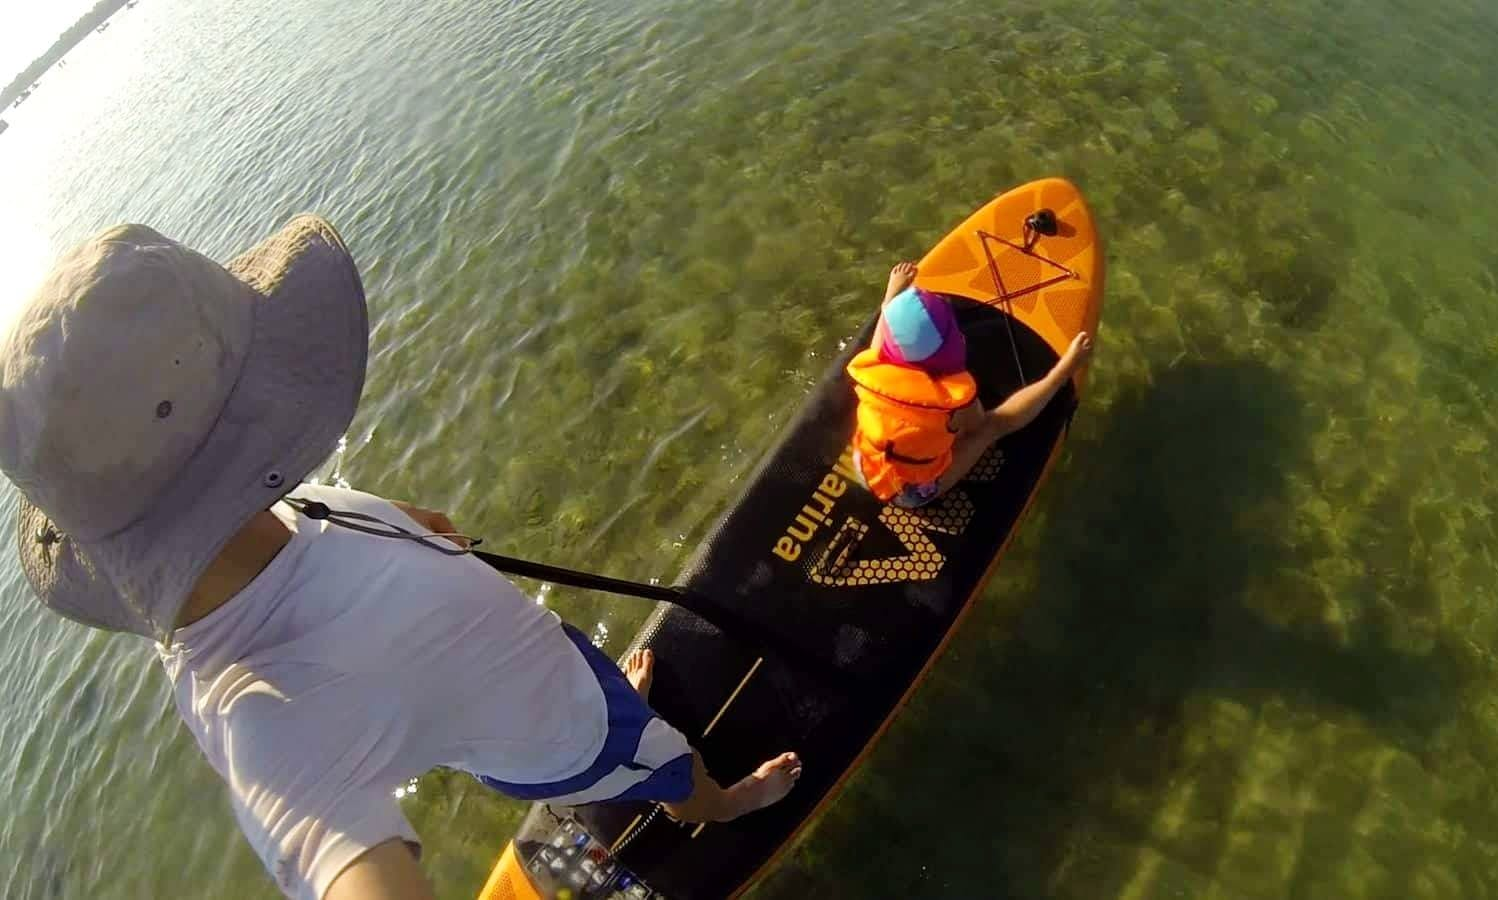 Paddleboard Adventure in Privlaka, Croatia